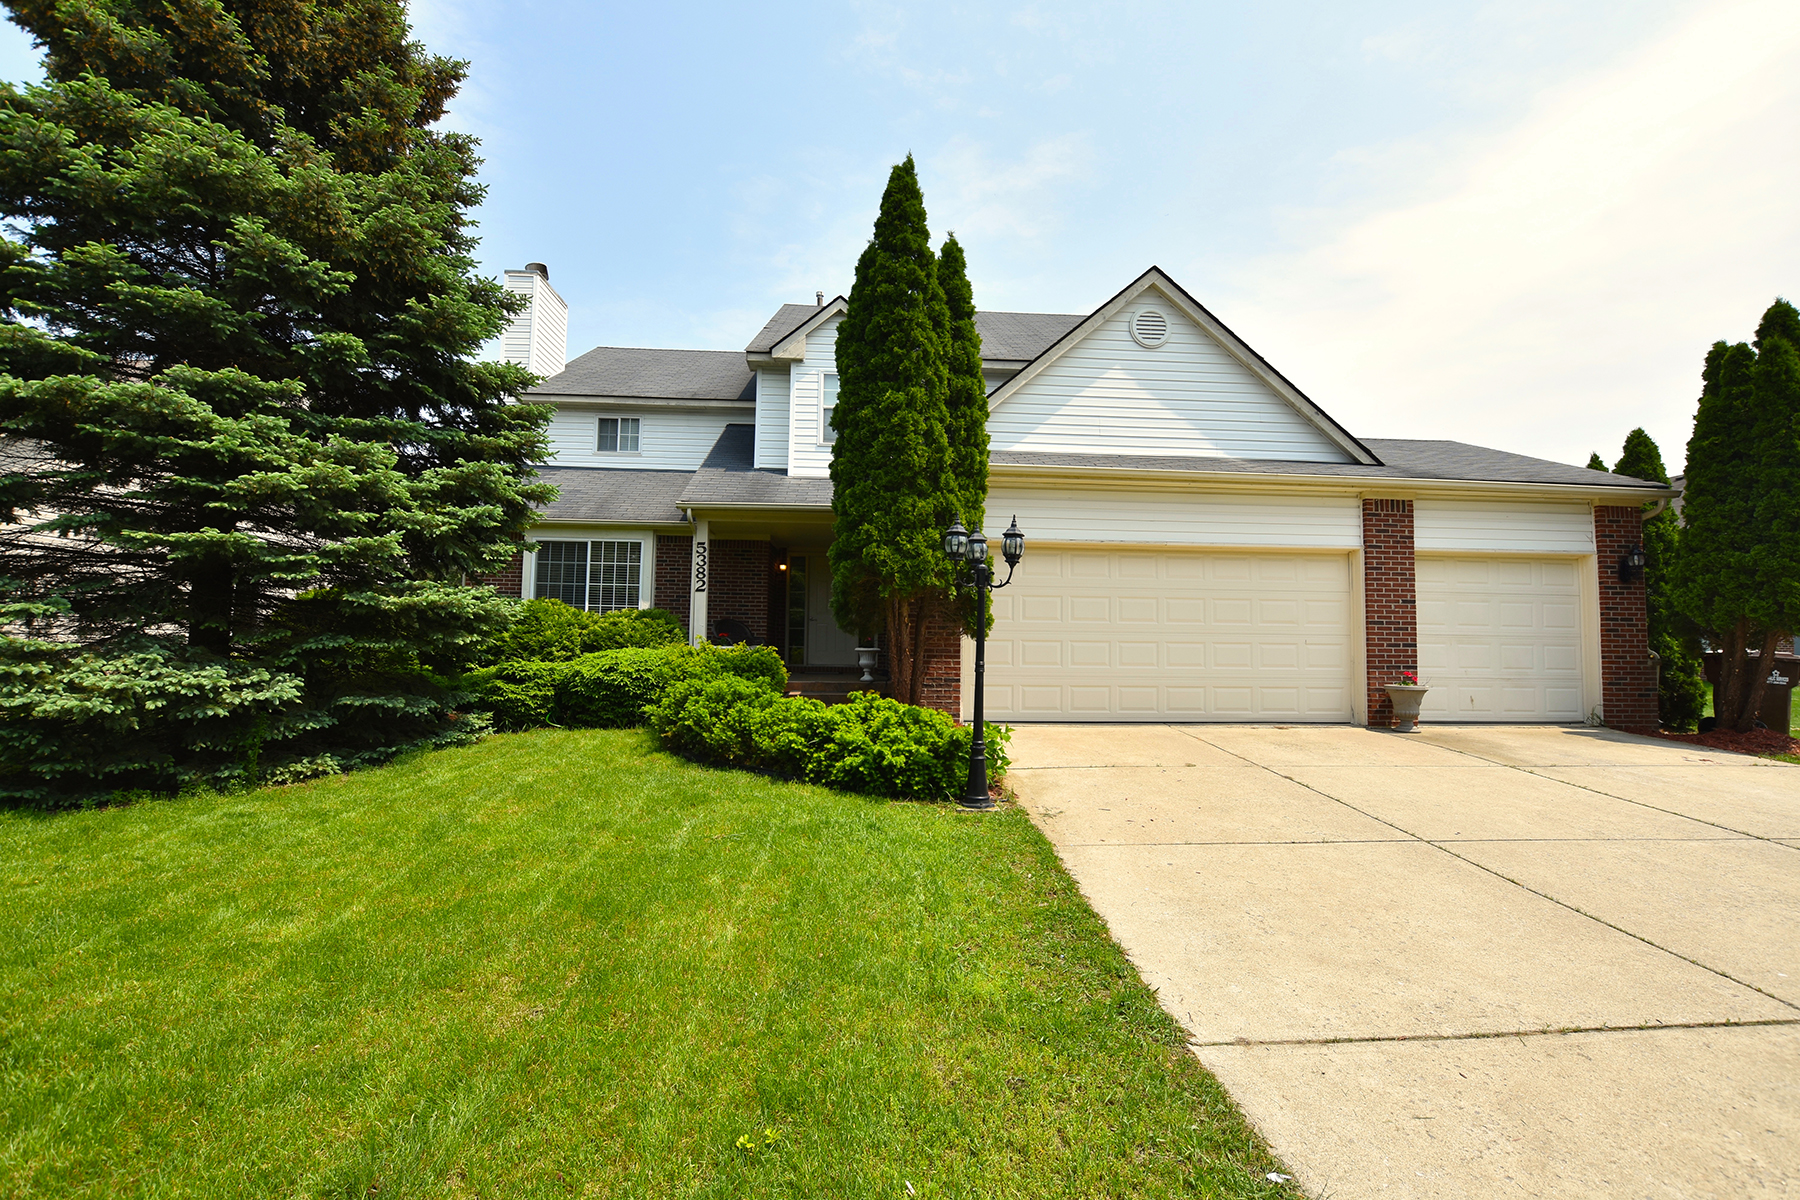 Single Family Homes for Sale at Commerce Township 5382 Mill Race Way Commerce Township, Michigan 48382 United States